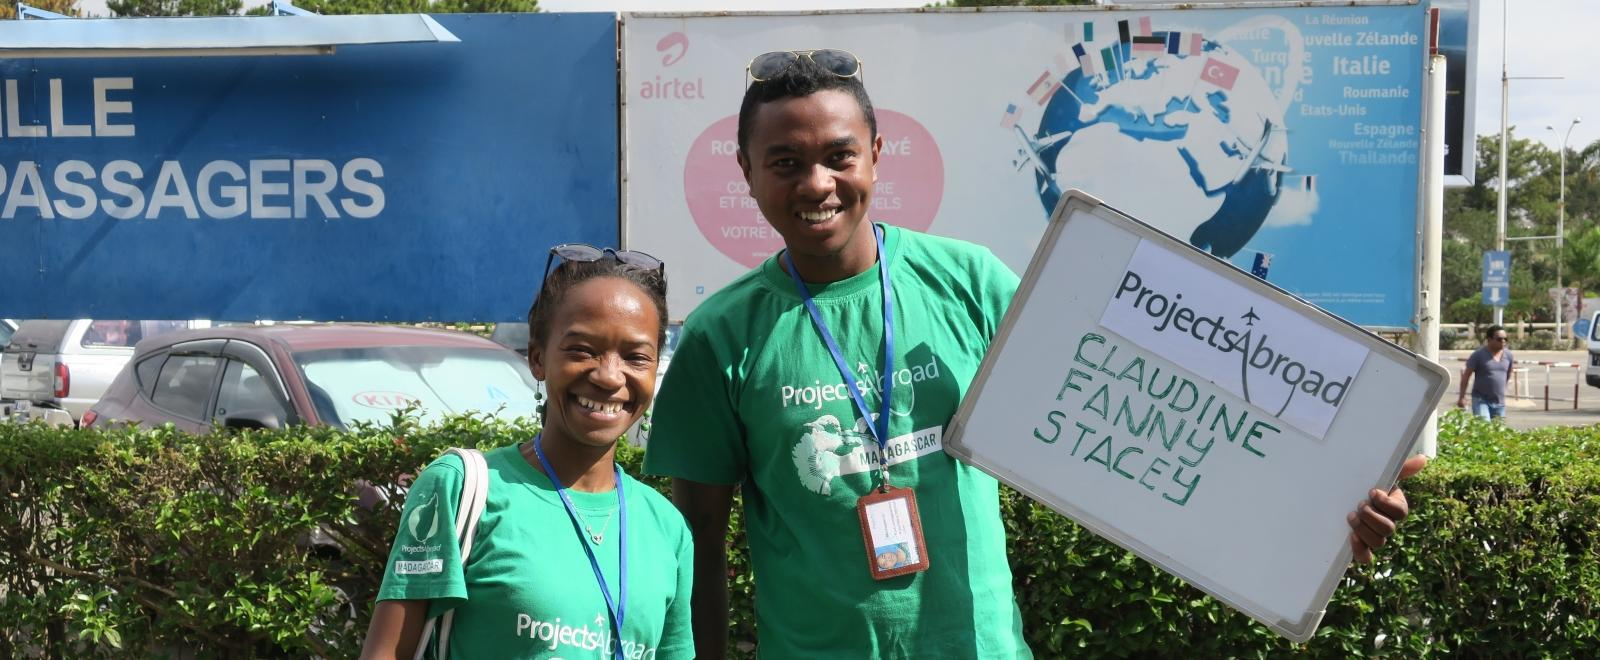 Staff stand and wait for the volunteers with the Projects Abroad sign in Madagascar.